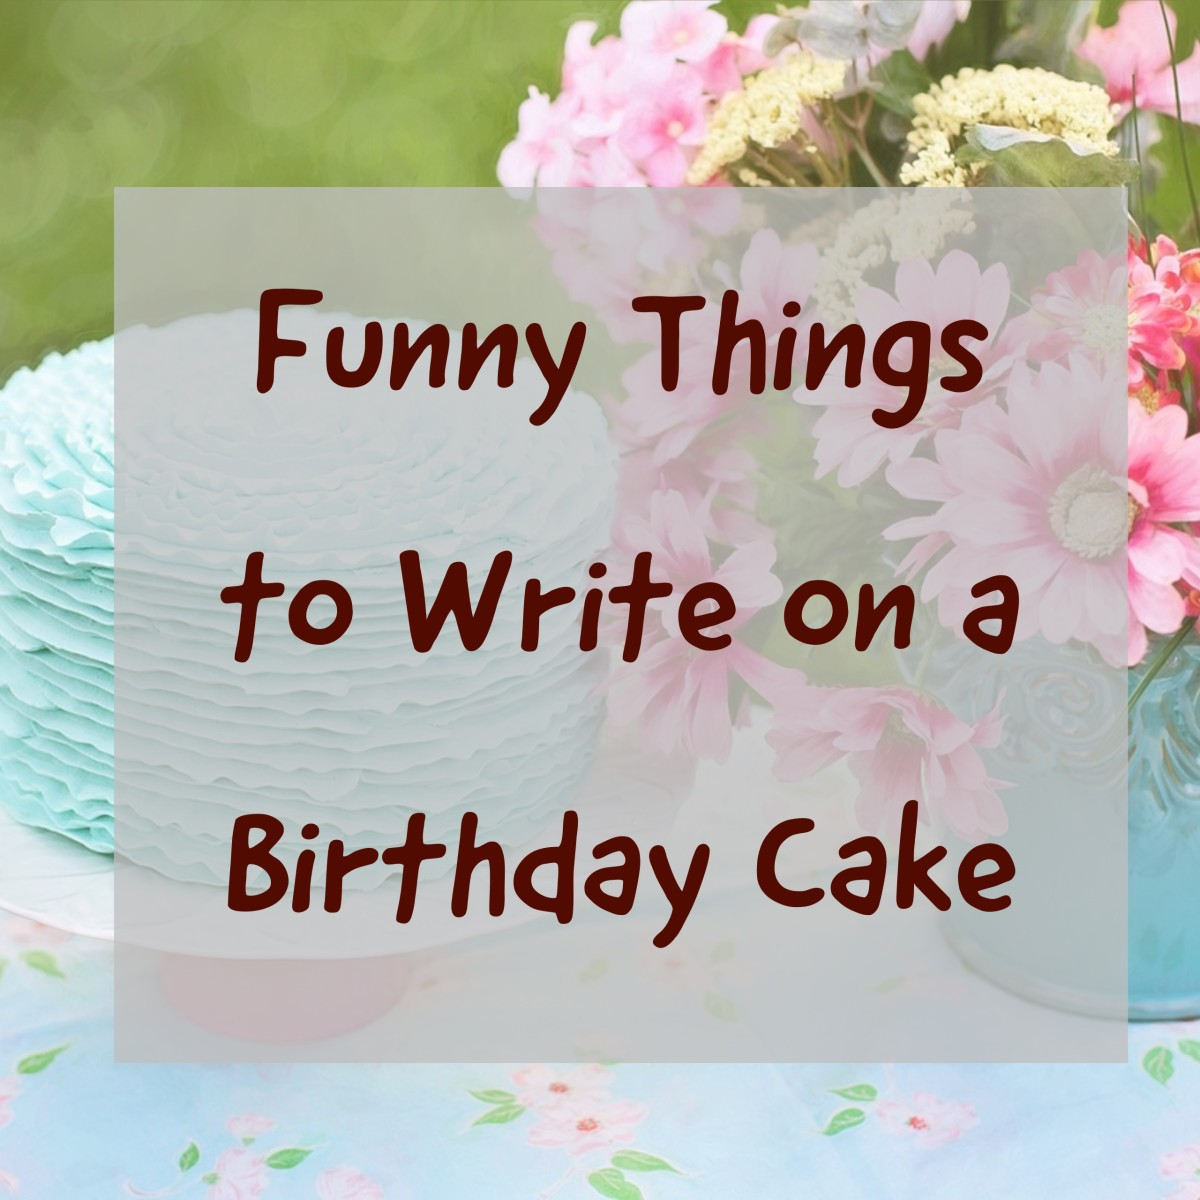 Over 100 Funny Things to Write on a Birthday Cake